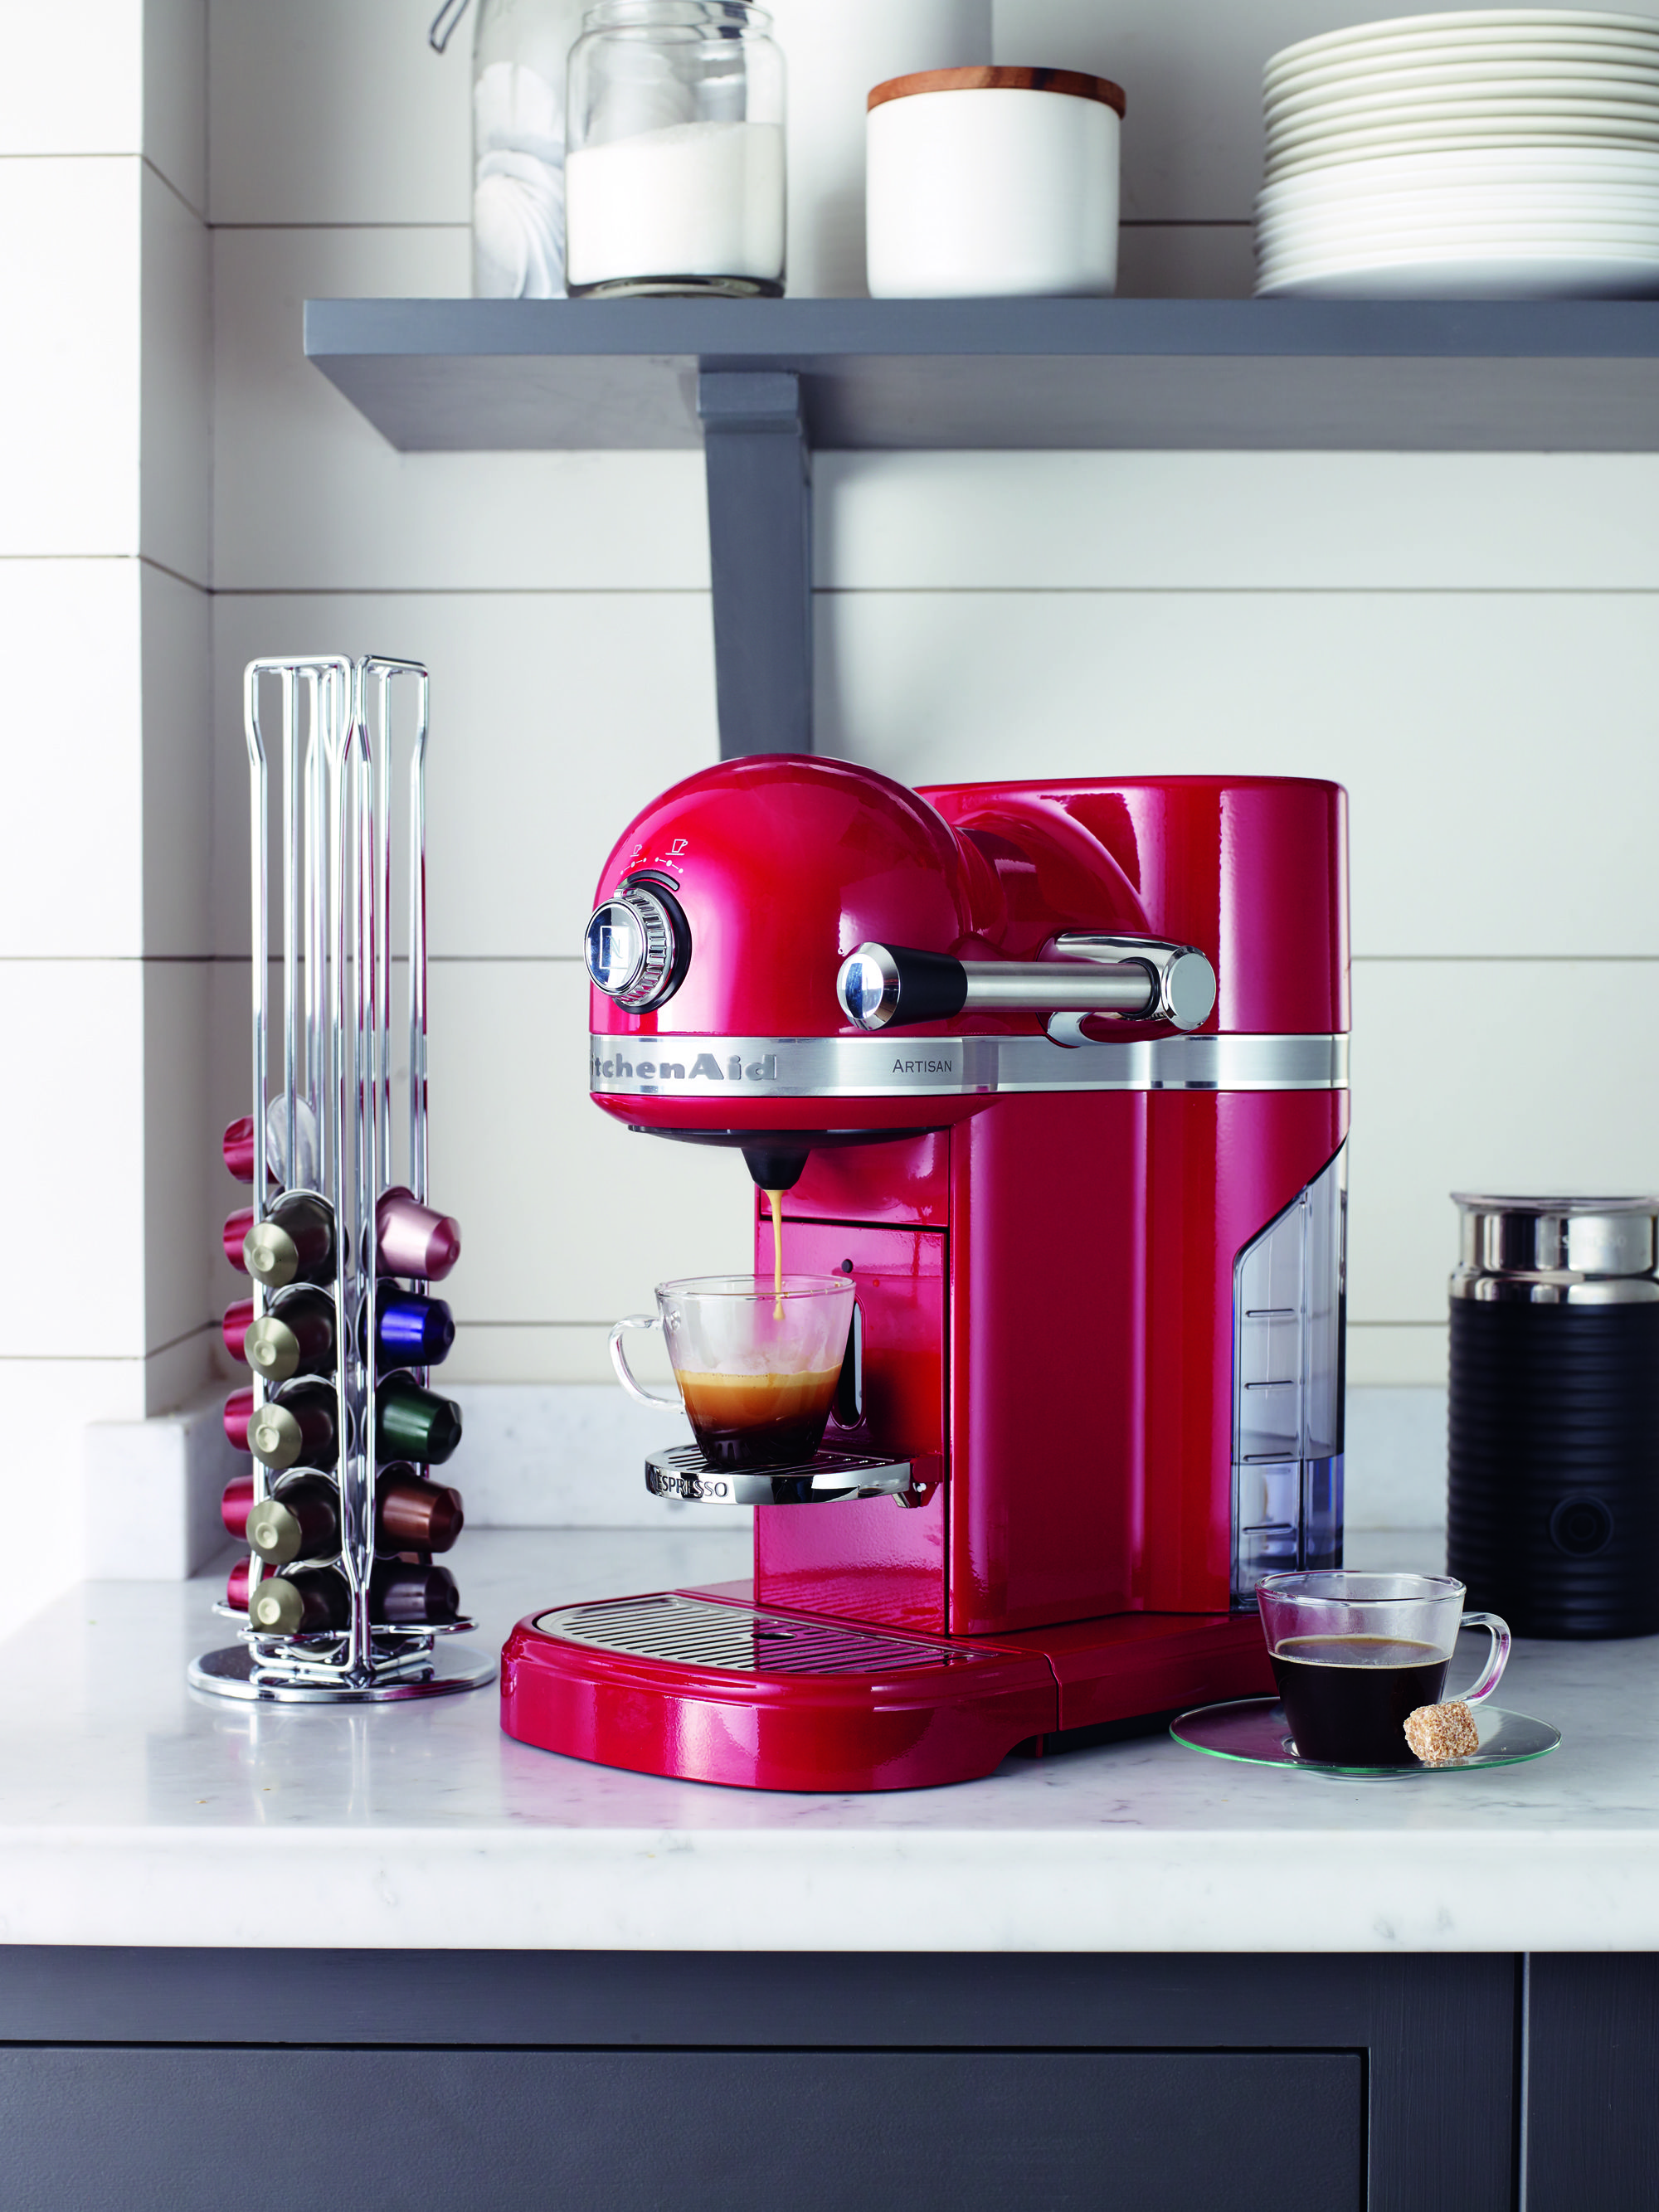 Get ready in the mornings with this red kitchen